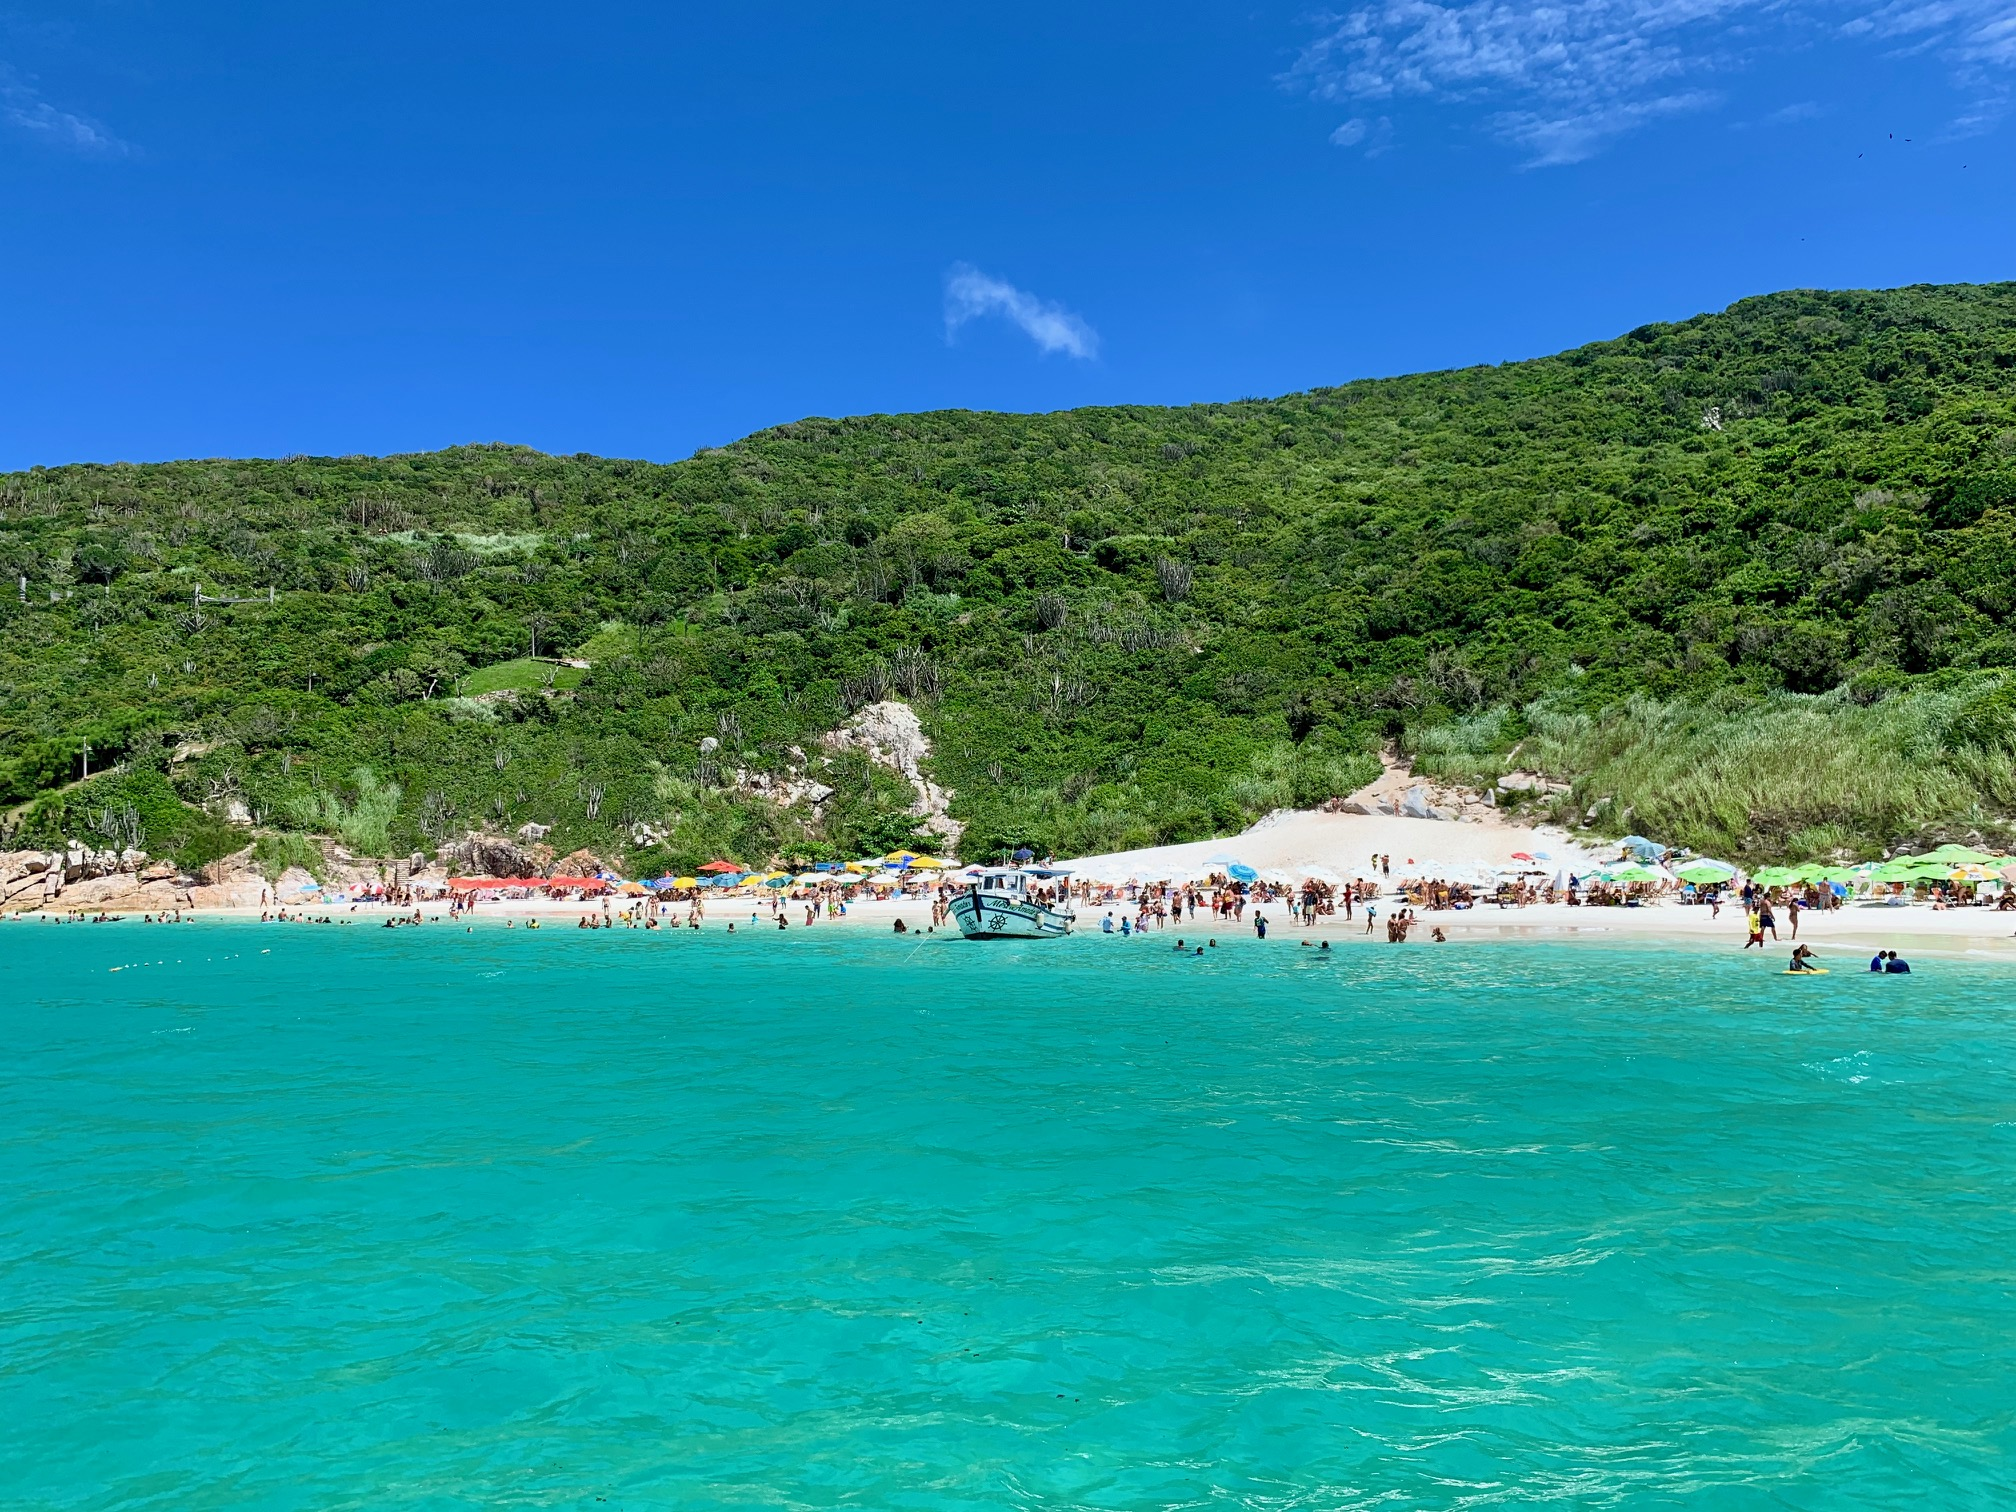 Temperatura del agua en Arraial do Cabo